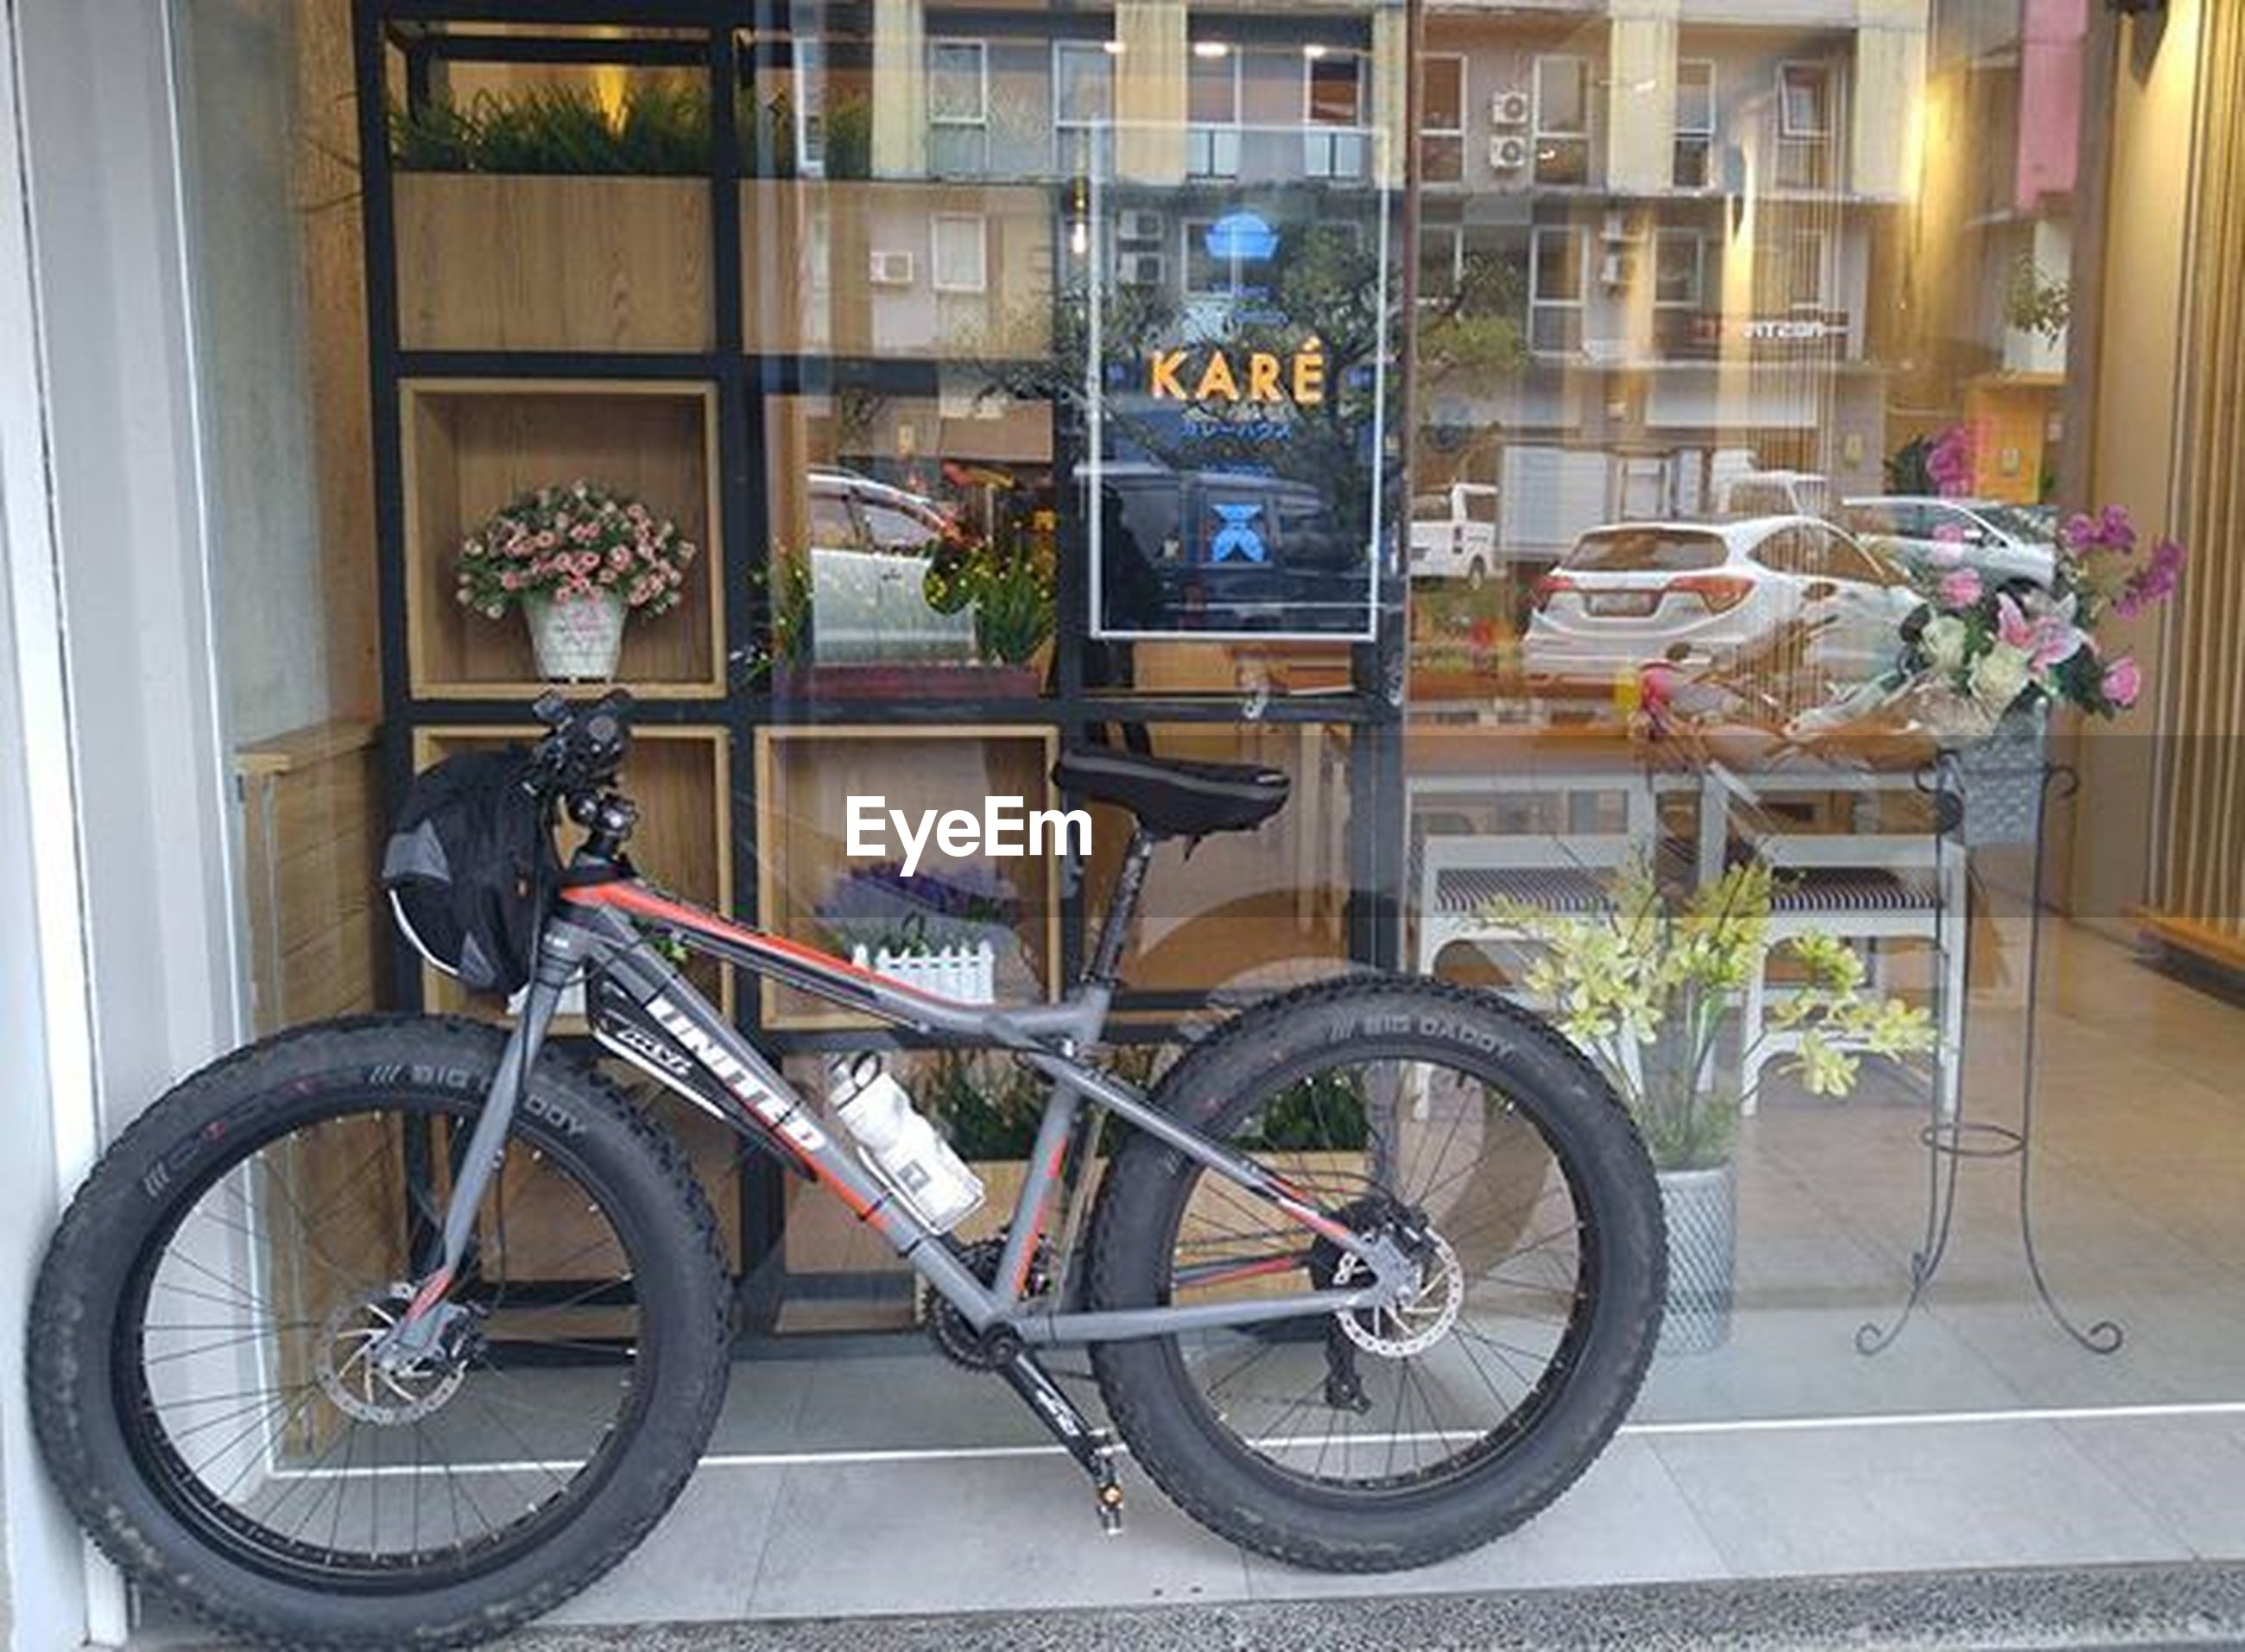 bicycle, architecture, built structure, building exterior, mode of transport, window, transportation, land vehicle, stationary, parking, parked, indoors, building, house, day, no people, city, wall - building feature, potted plant